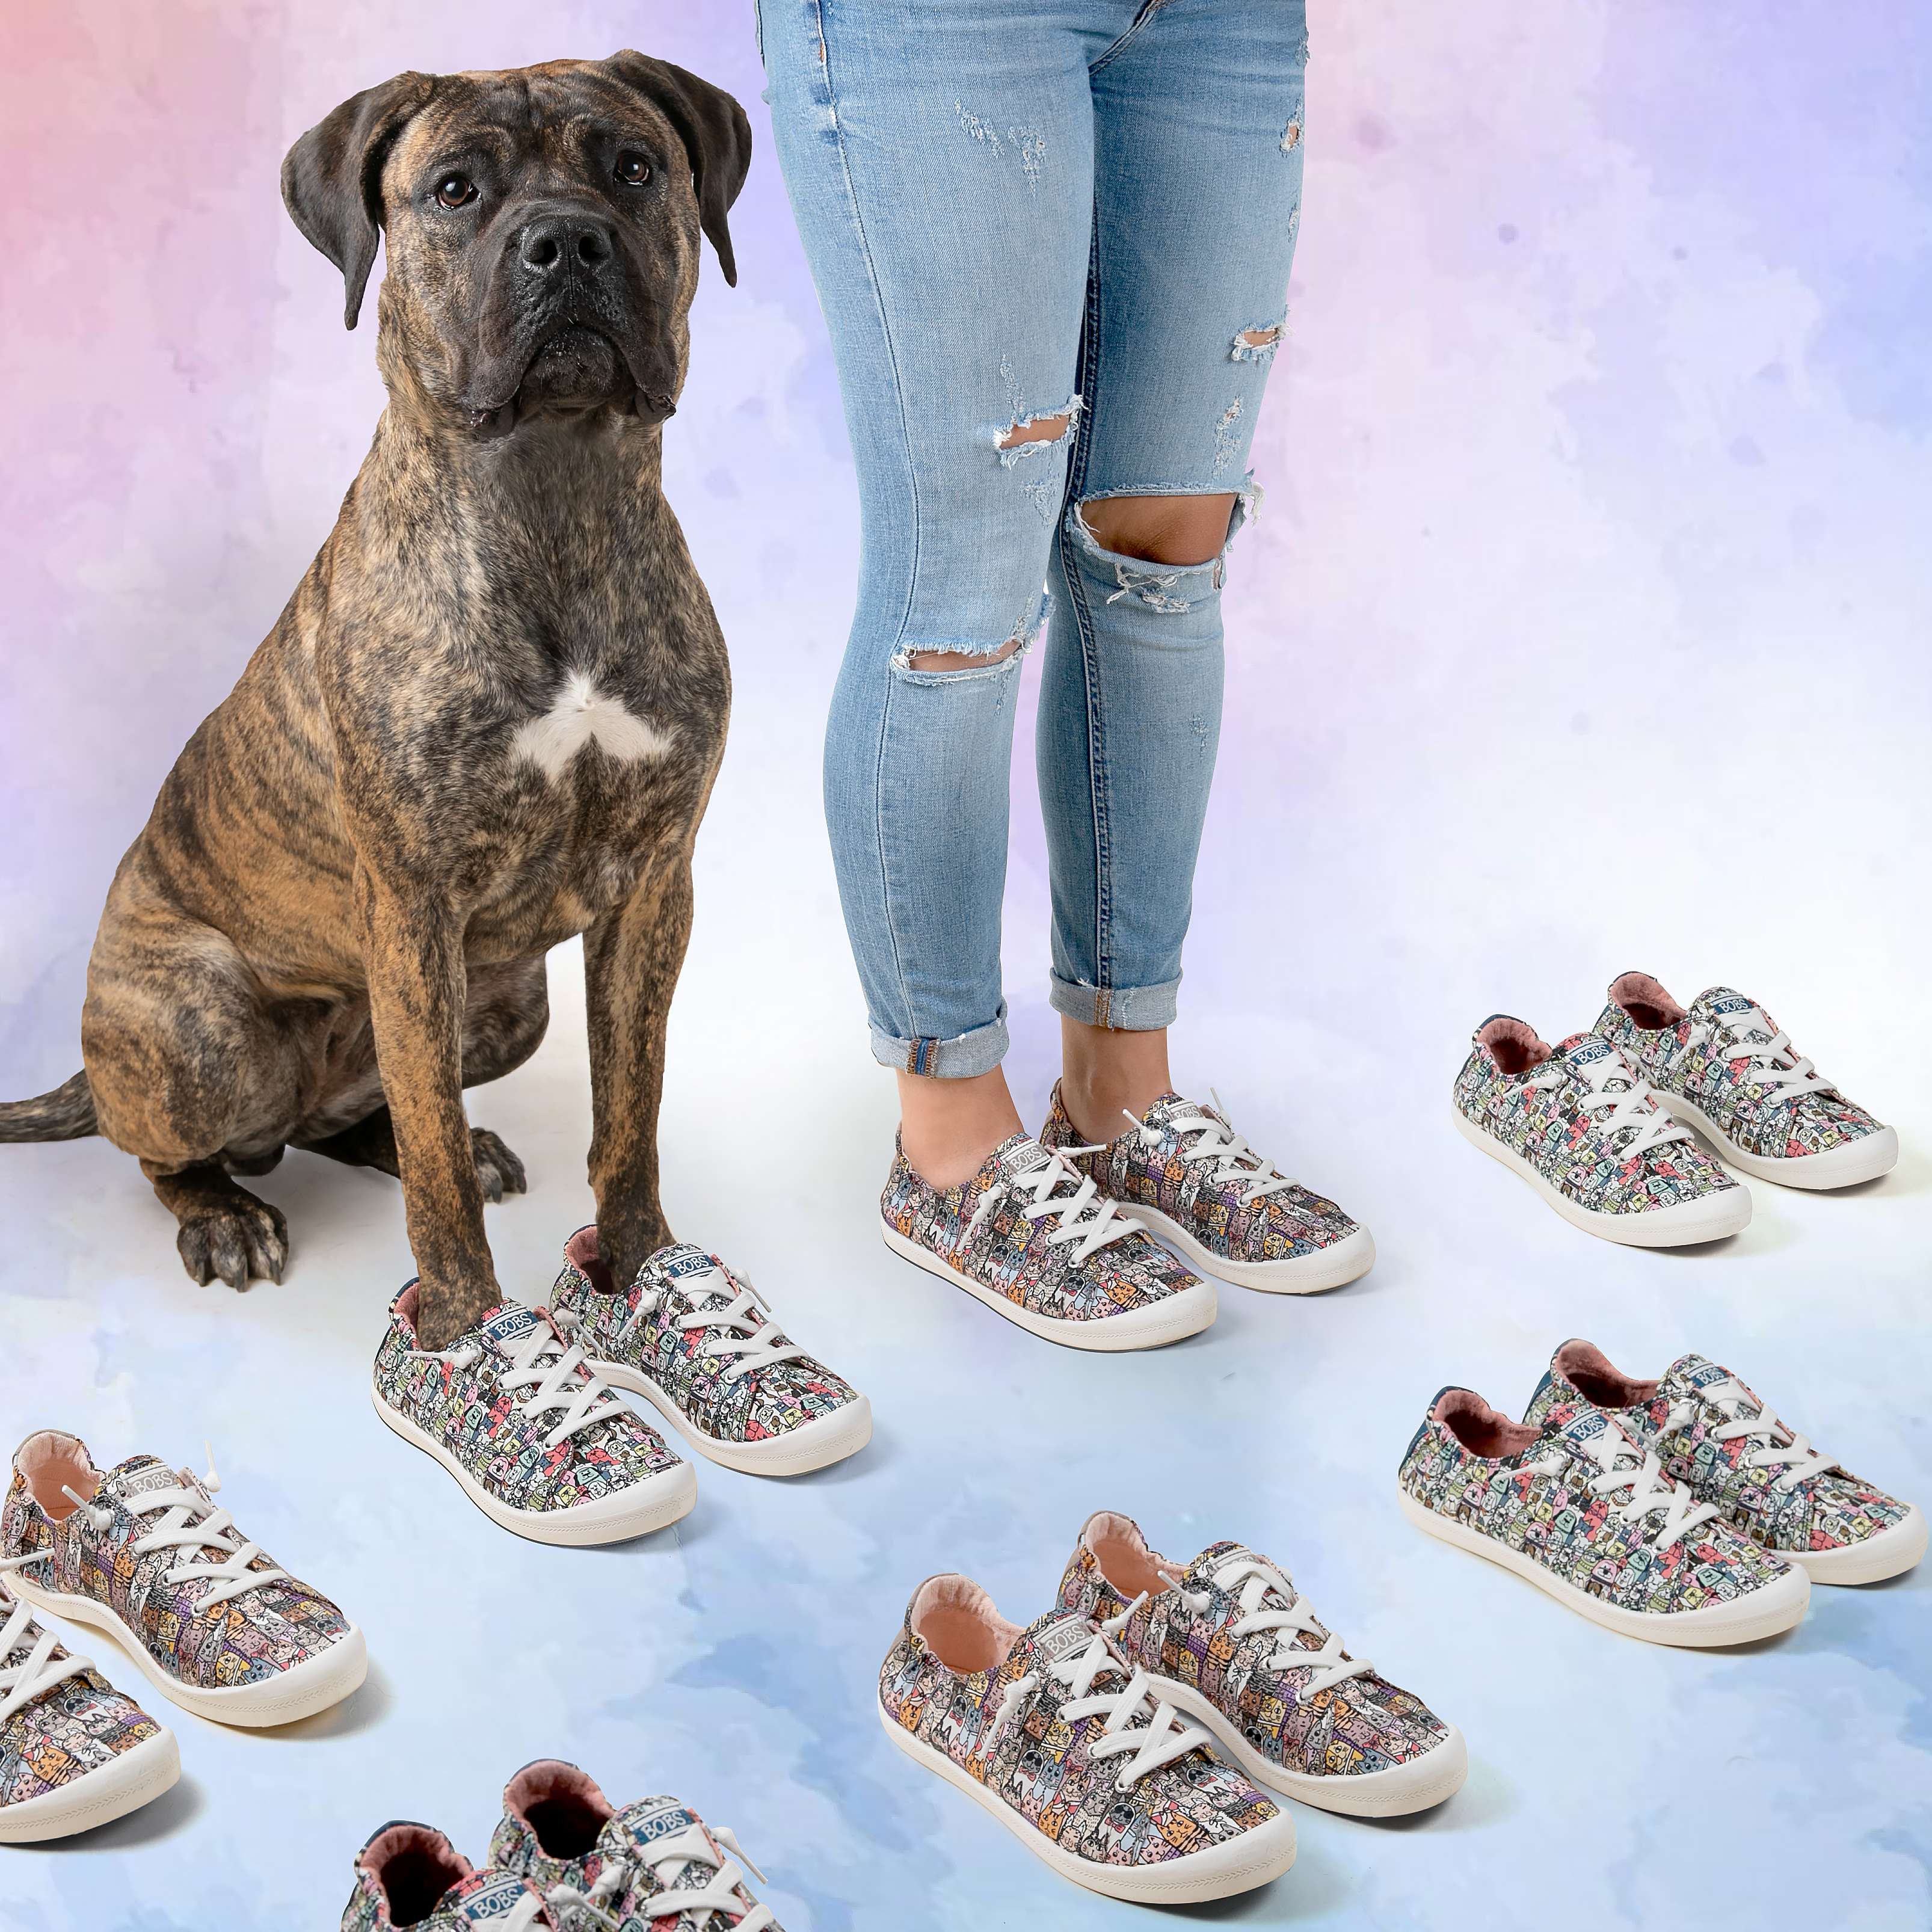 Skechers to Donate to Canadian Shelter